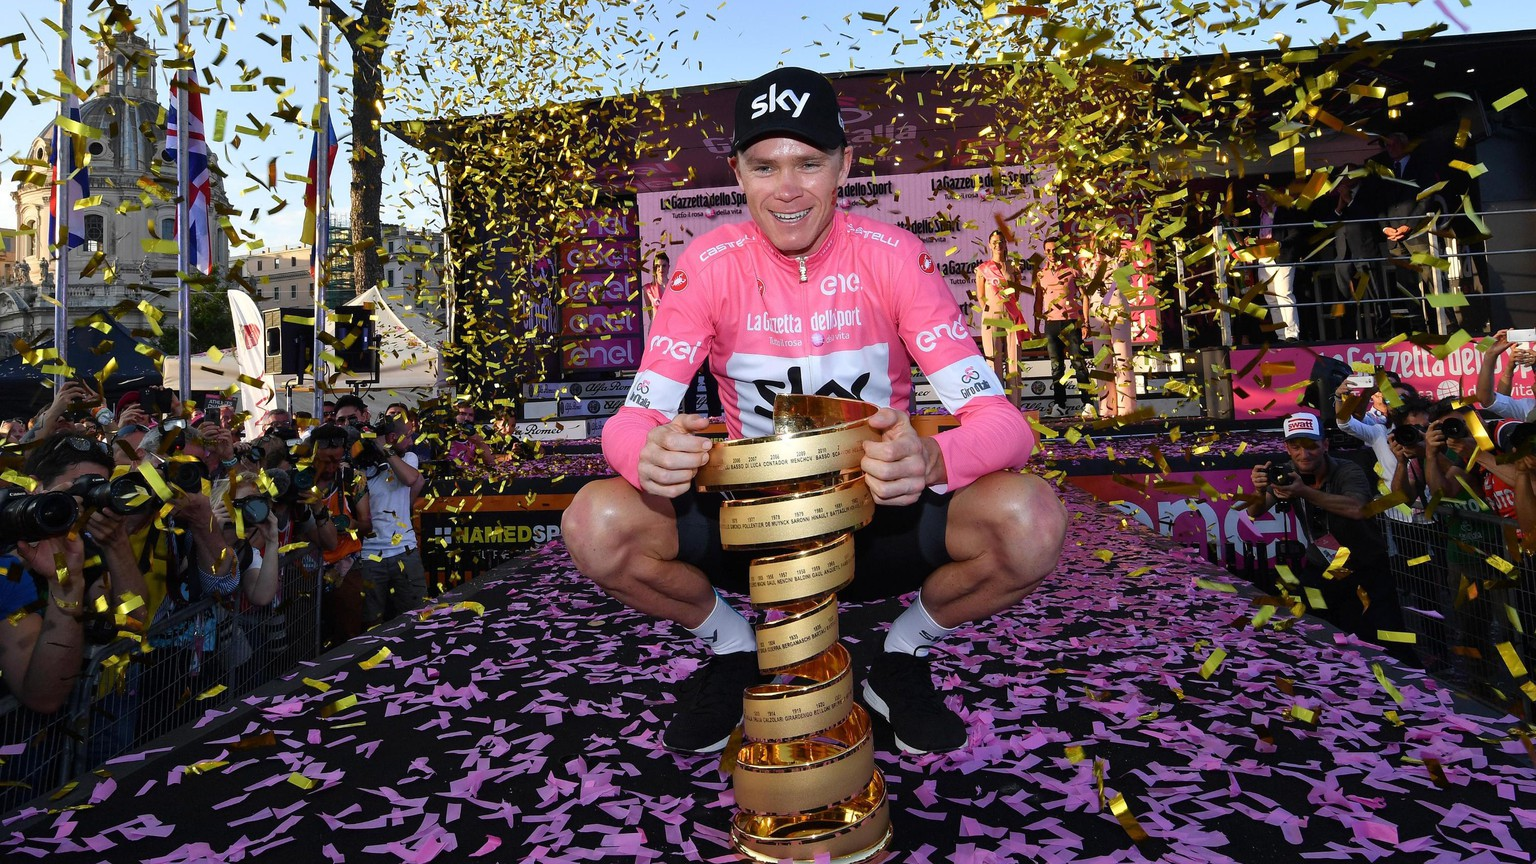 epa06767466 British Britain's Chris Froome poses with the trophy of the Giro d'Italia cycling race after the twenty-first and final stage of the Giro d'Italia cycling race, over 115 km in Rome, Italy, 27 May 2018.  EPA/Daniel Dal Zennaro